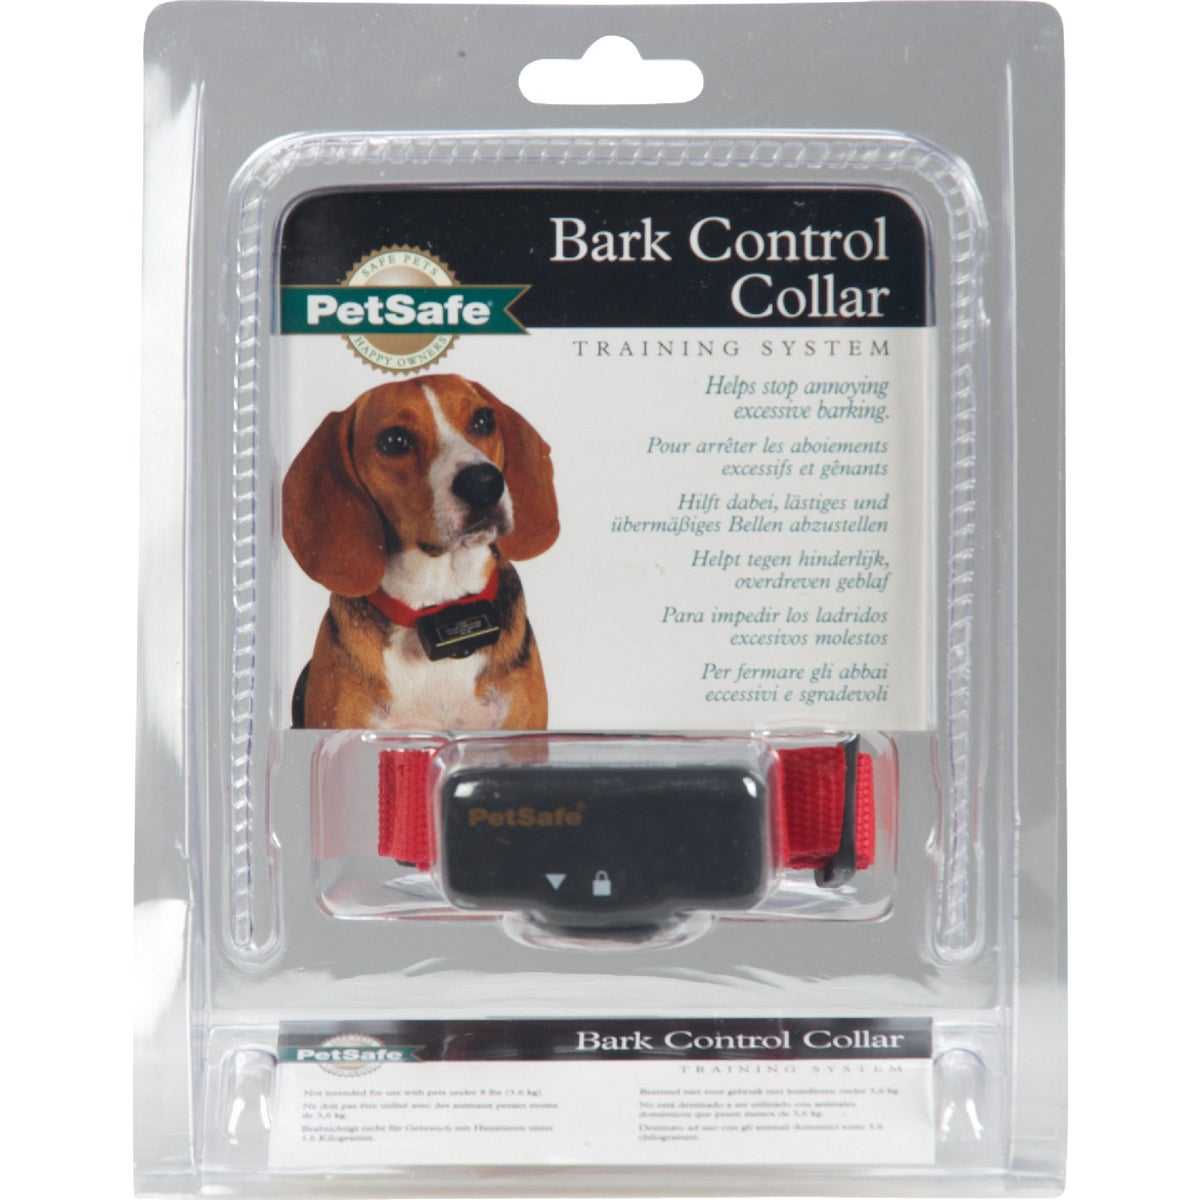 BARK CONTROL COLLAR - PBC-102 by Radio System